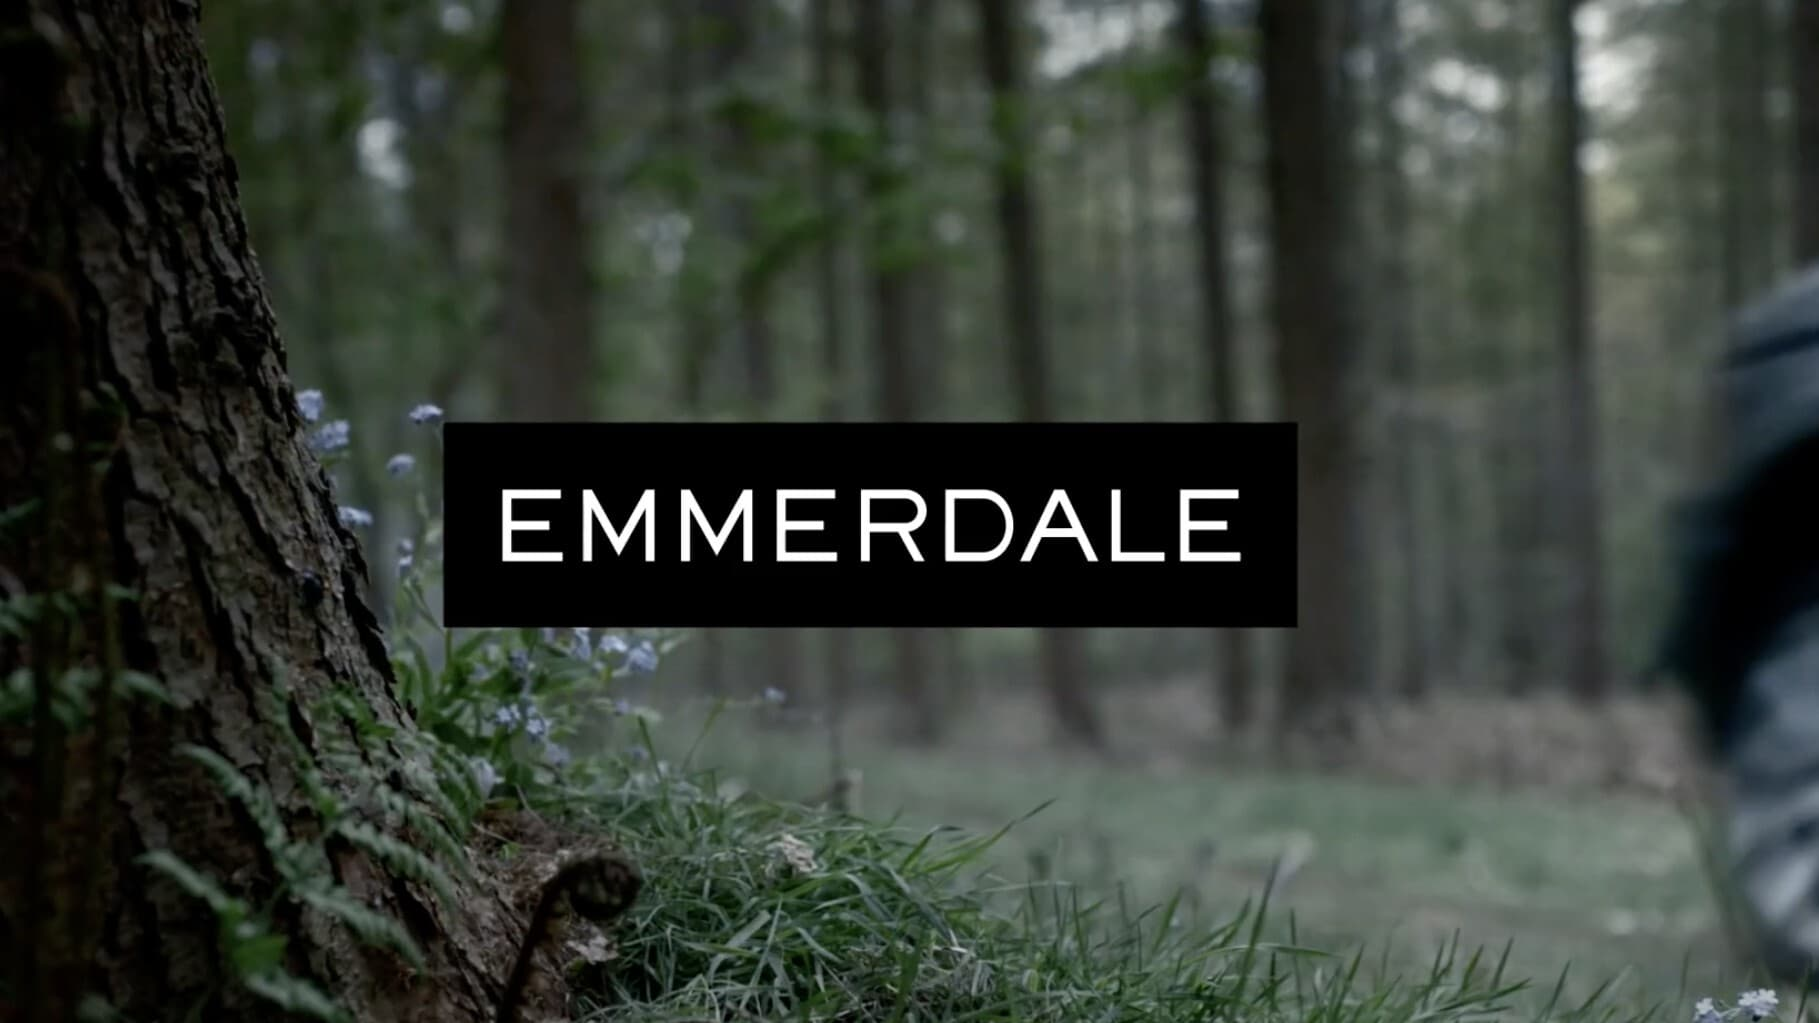 Emmerdale - Season 36 Episode 162 : July 15, 2007